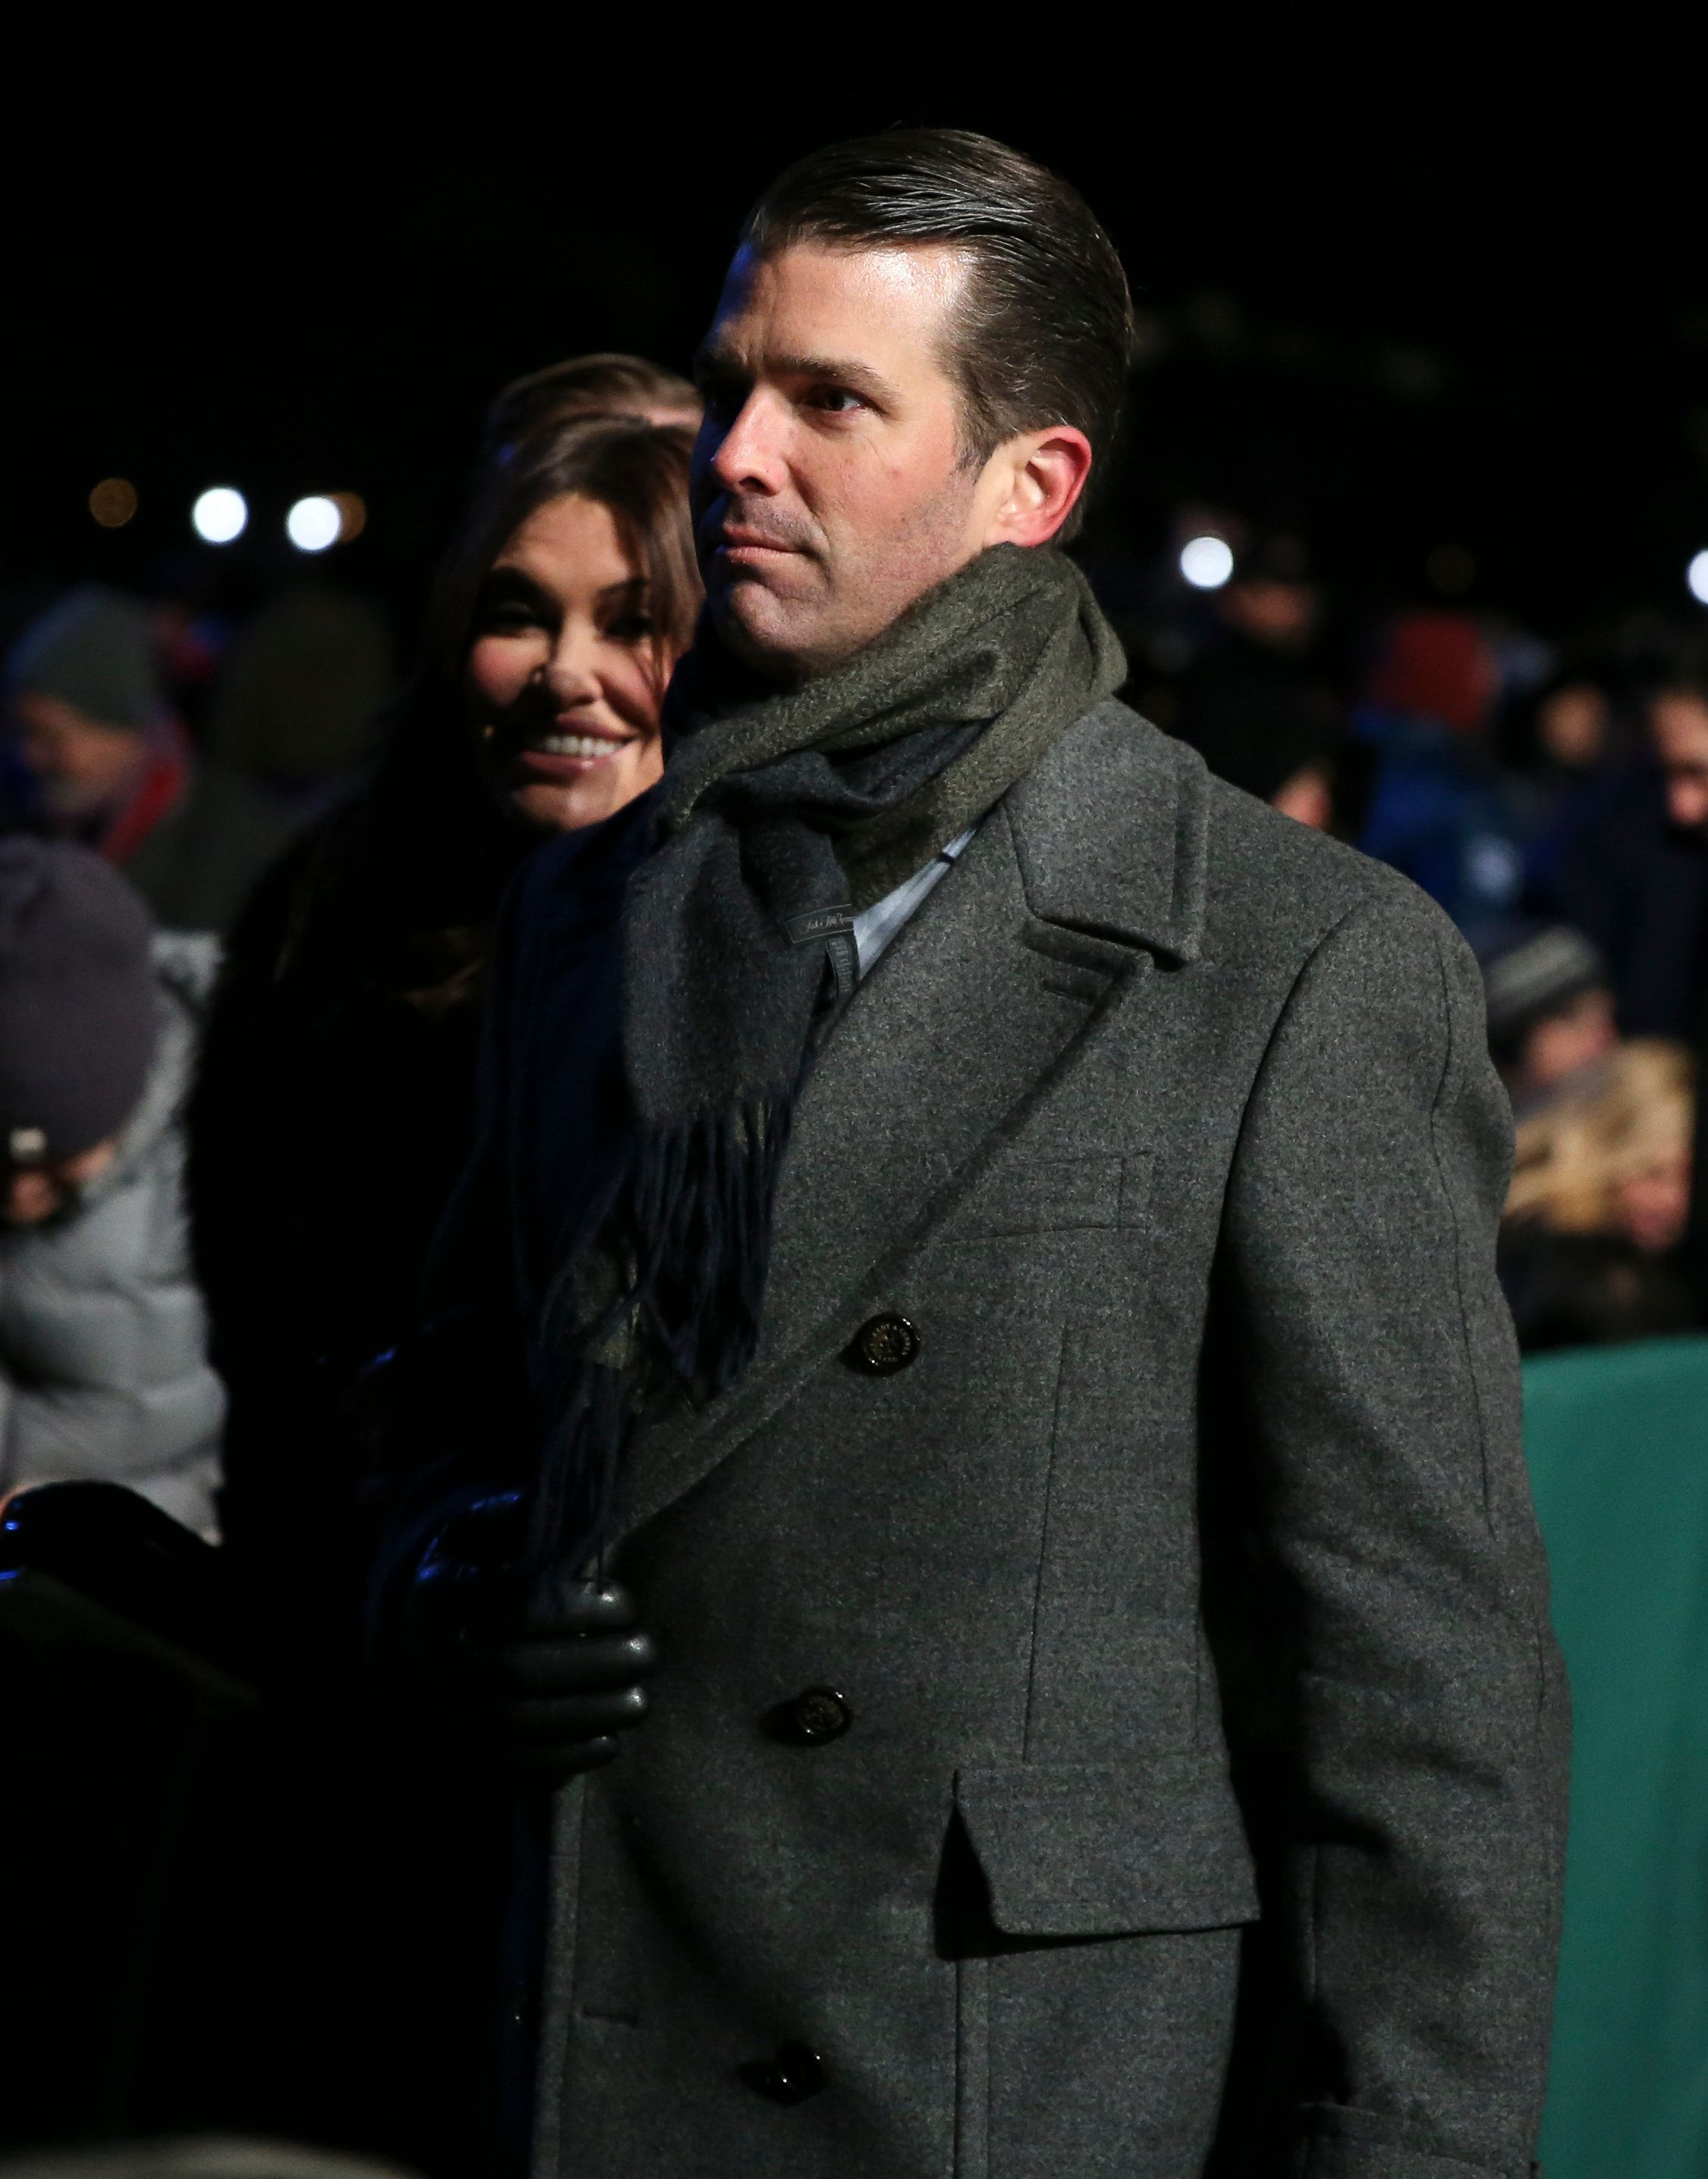 Donald Trump Jr. with his girlfriend Kimberly Guilfoyle attend the 2018 National Christmas Tree Lighting Ceremony at the Ellipse near the White House on November 28, 2018 in Washington, DC. (Photo by Oliver Contreras/SIPA USA)